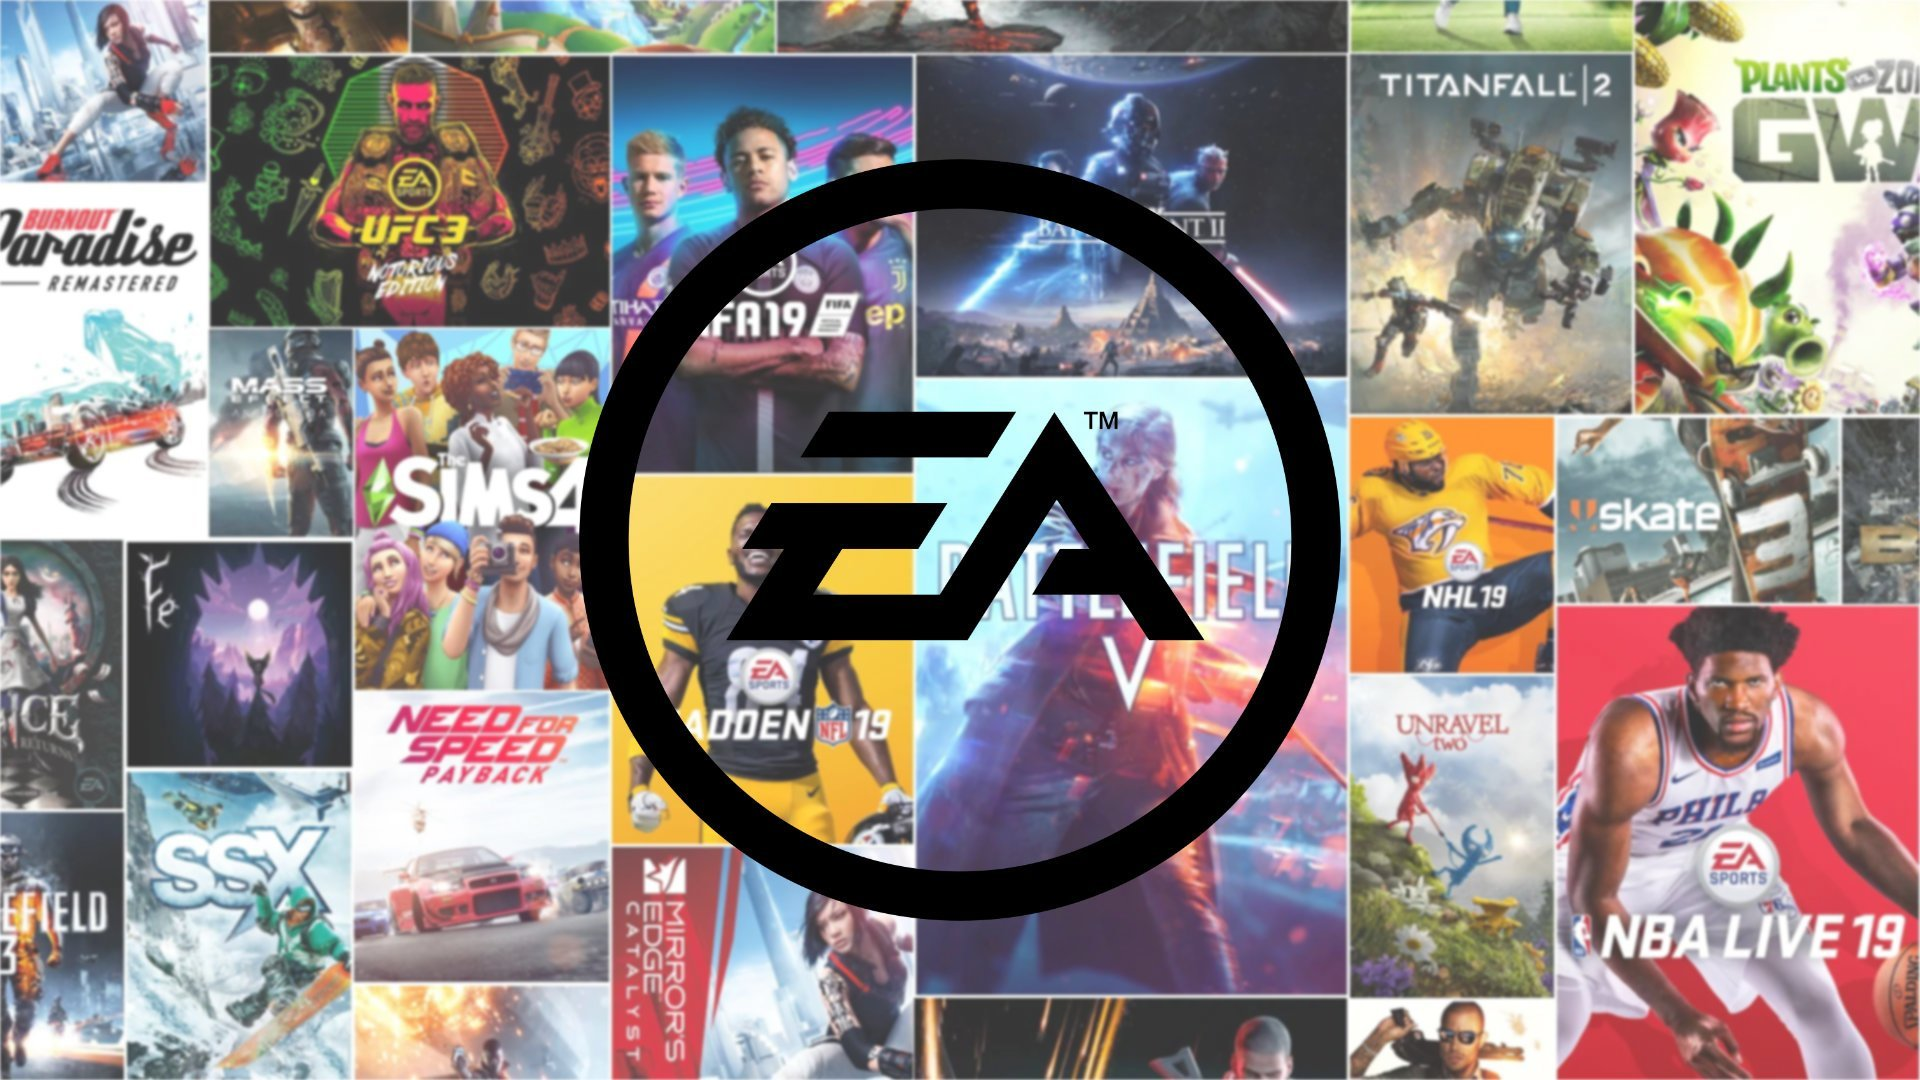 EA lance un test de son cloud gaming Atlas avec Amazon : comment s'inscrire